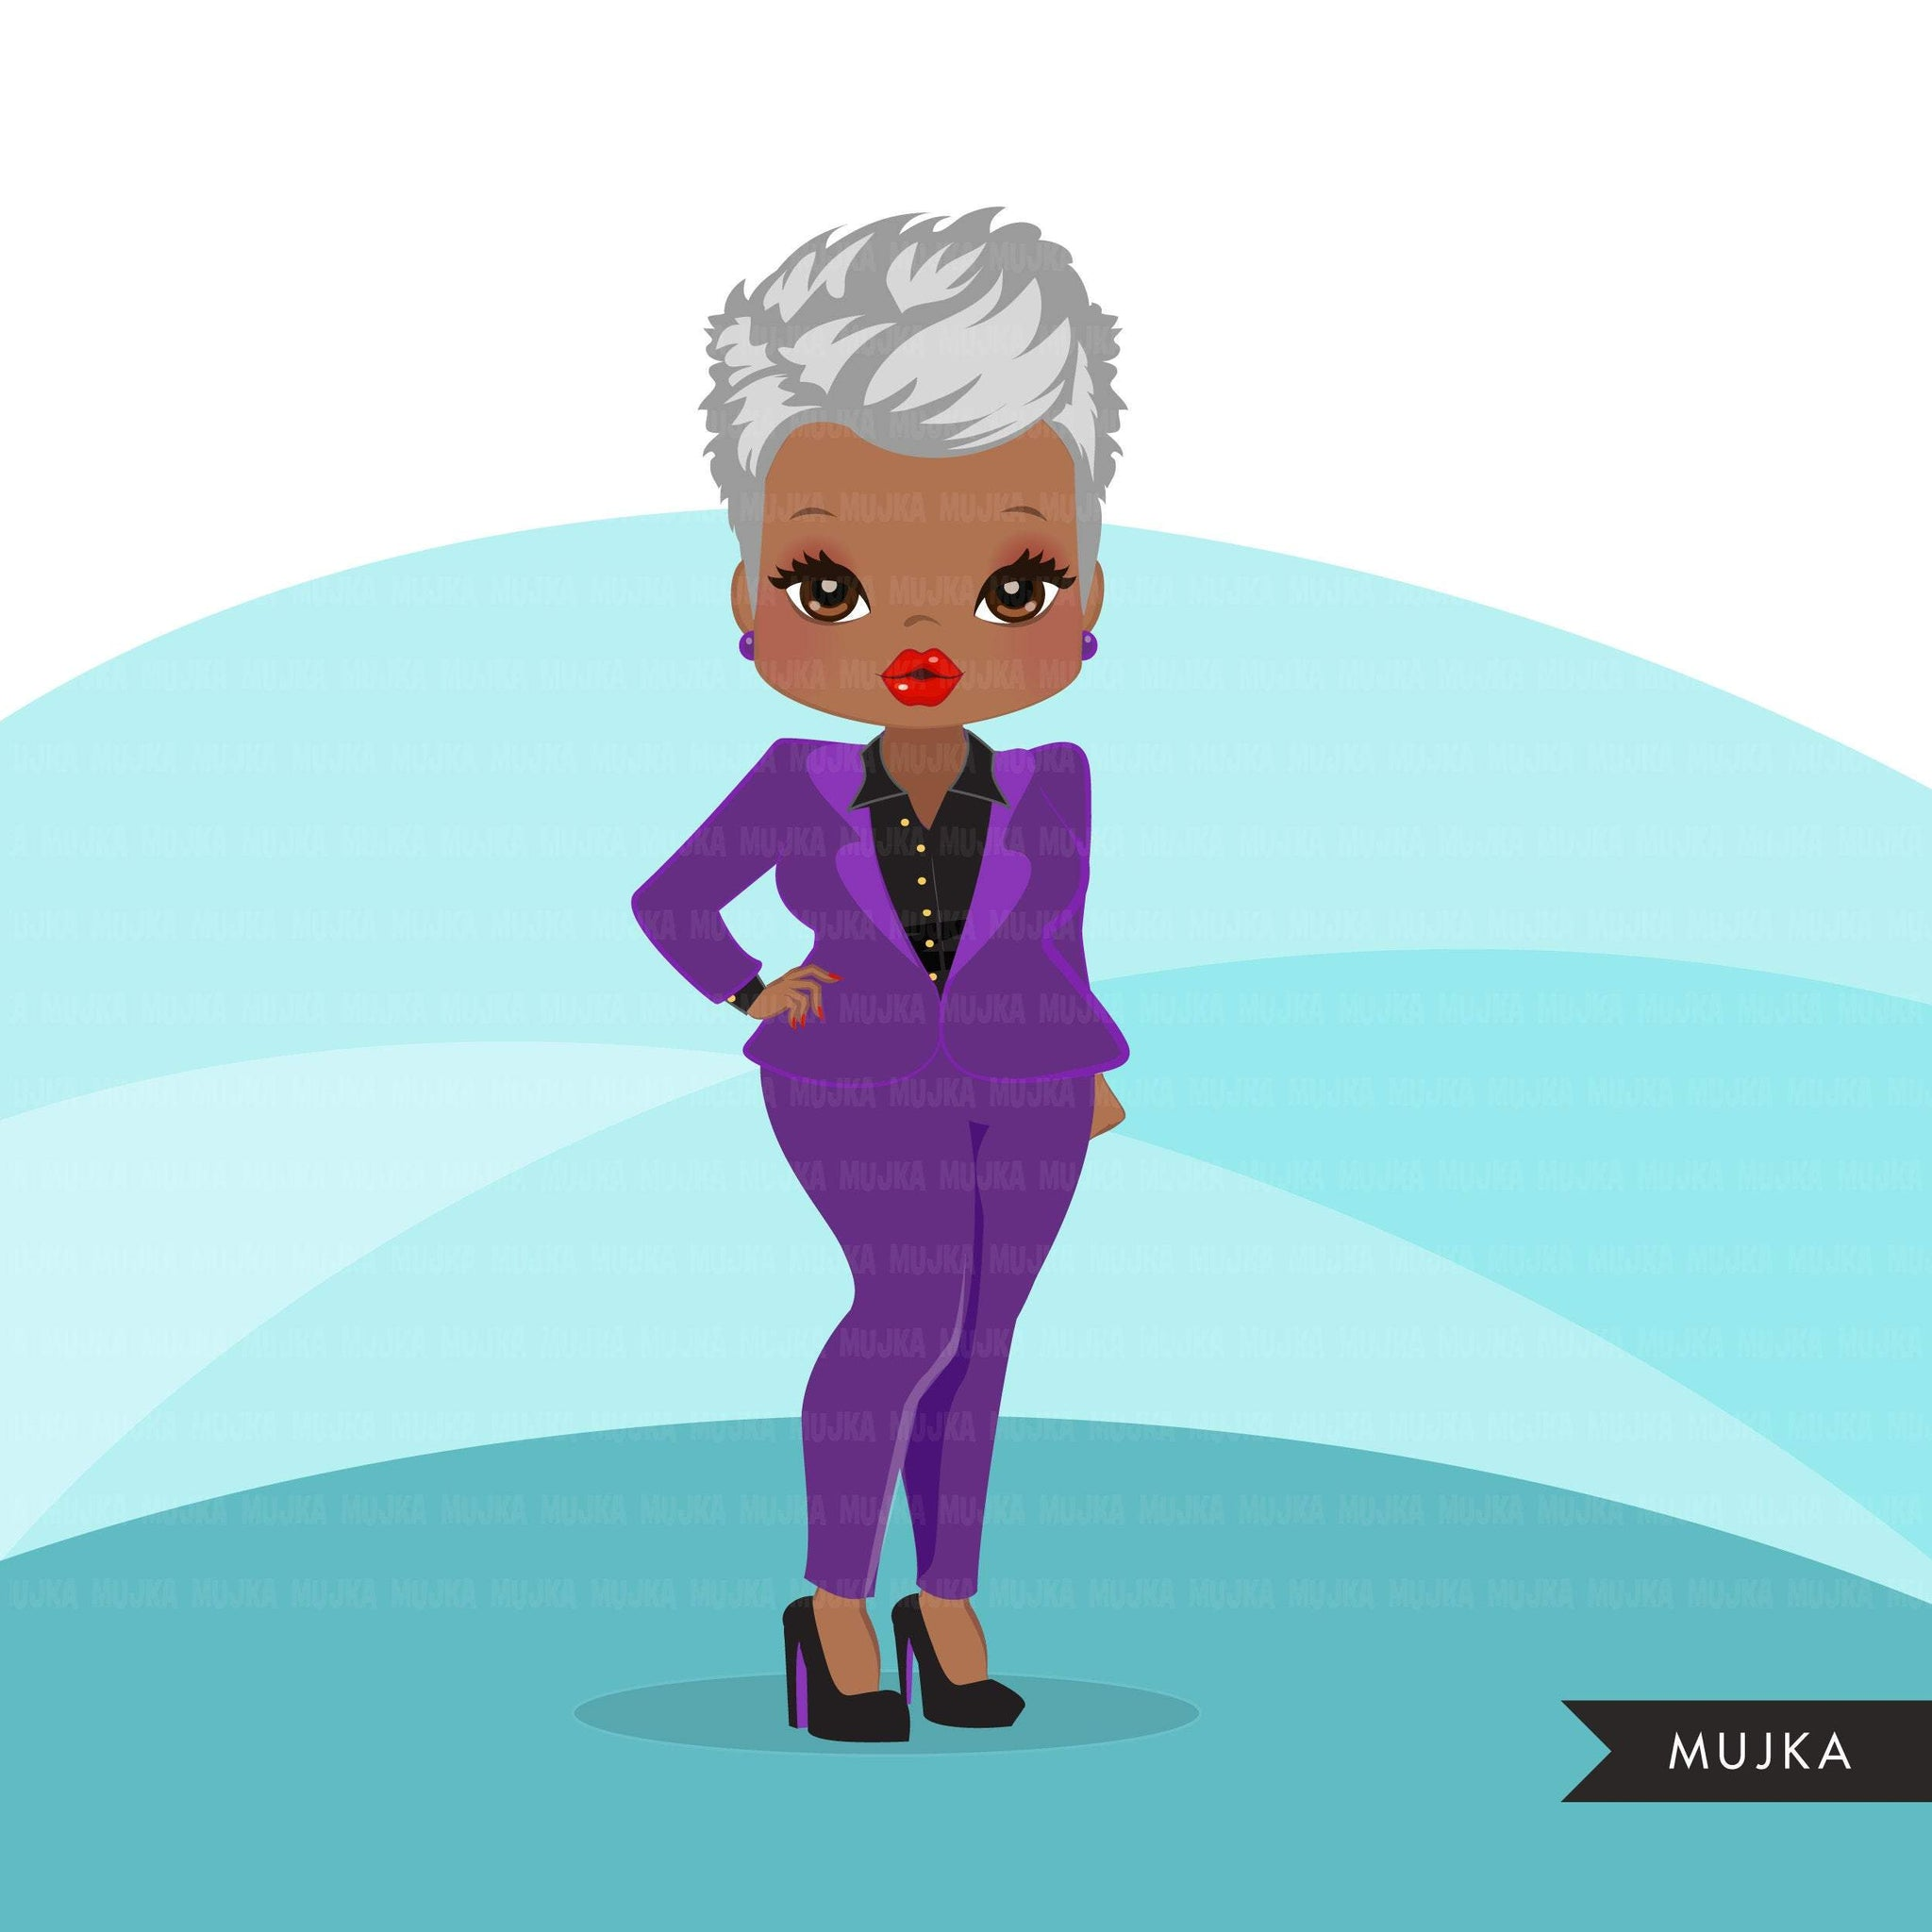 Afro mature woman clipart with purple business suit, briefcase and glasses black senior women graphics, print and cut sublimation clip art